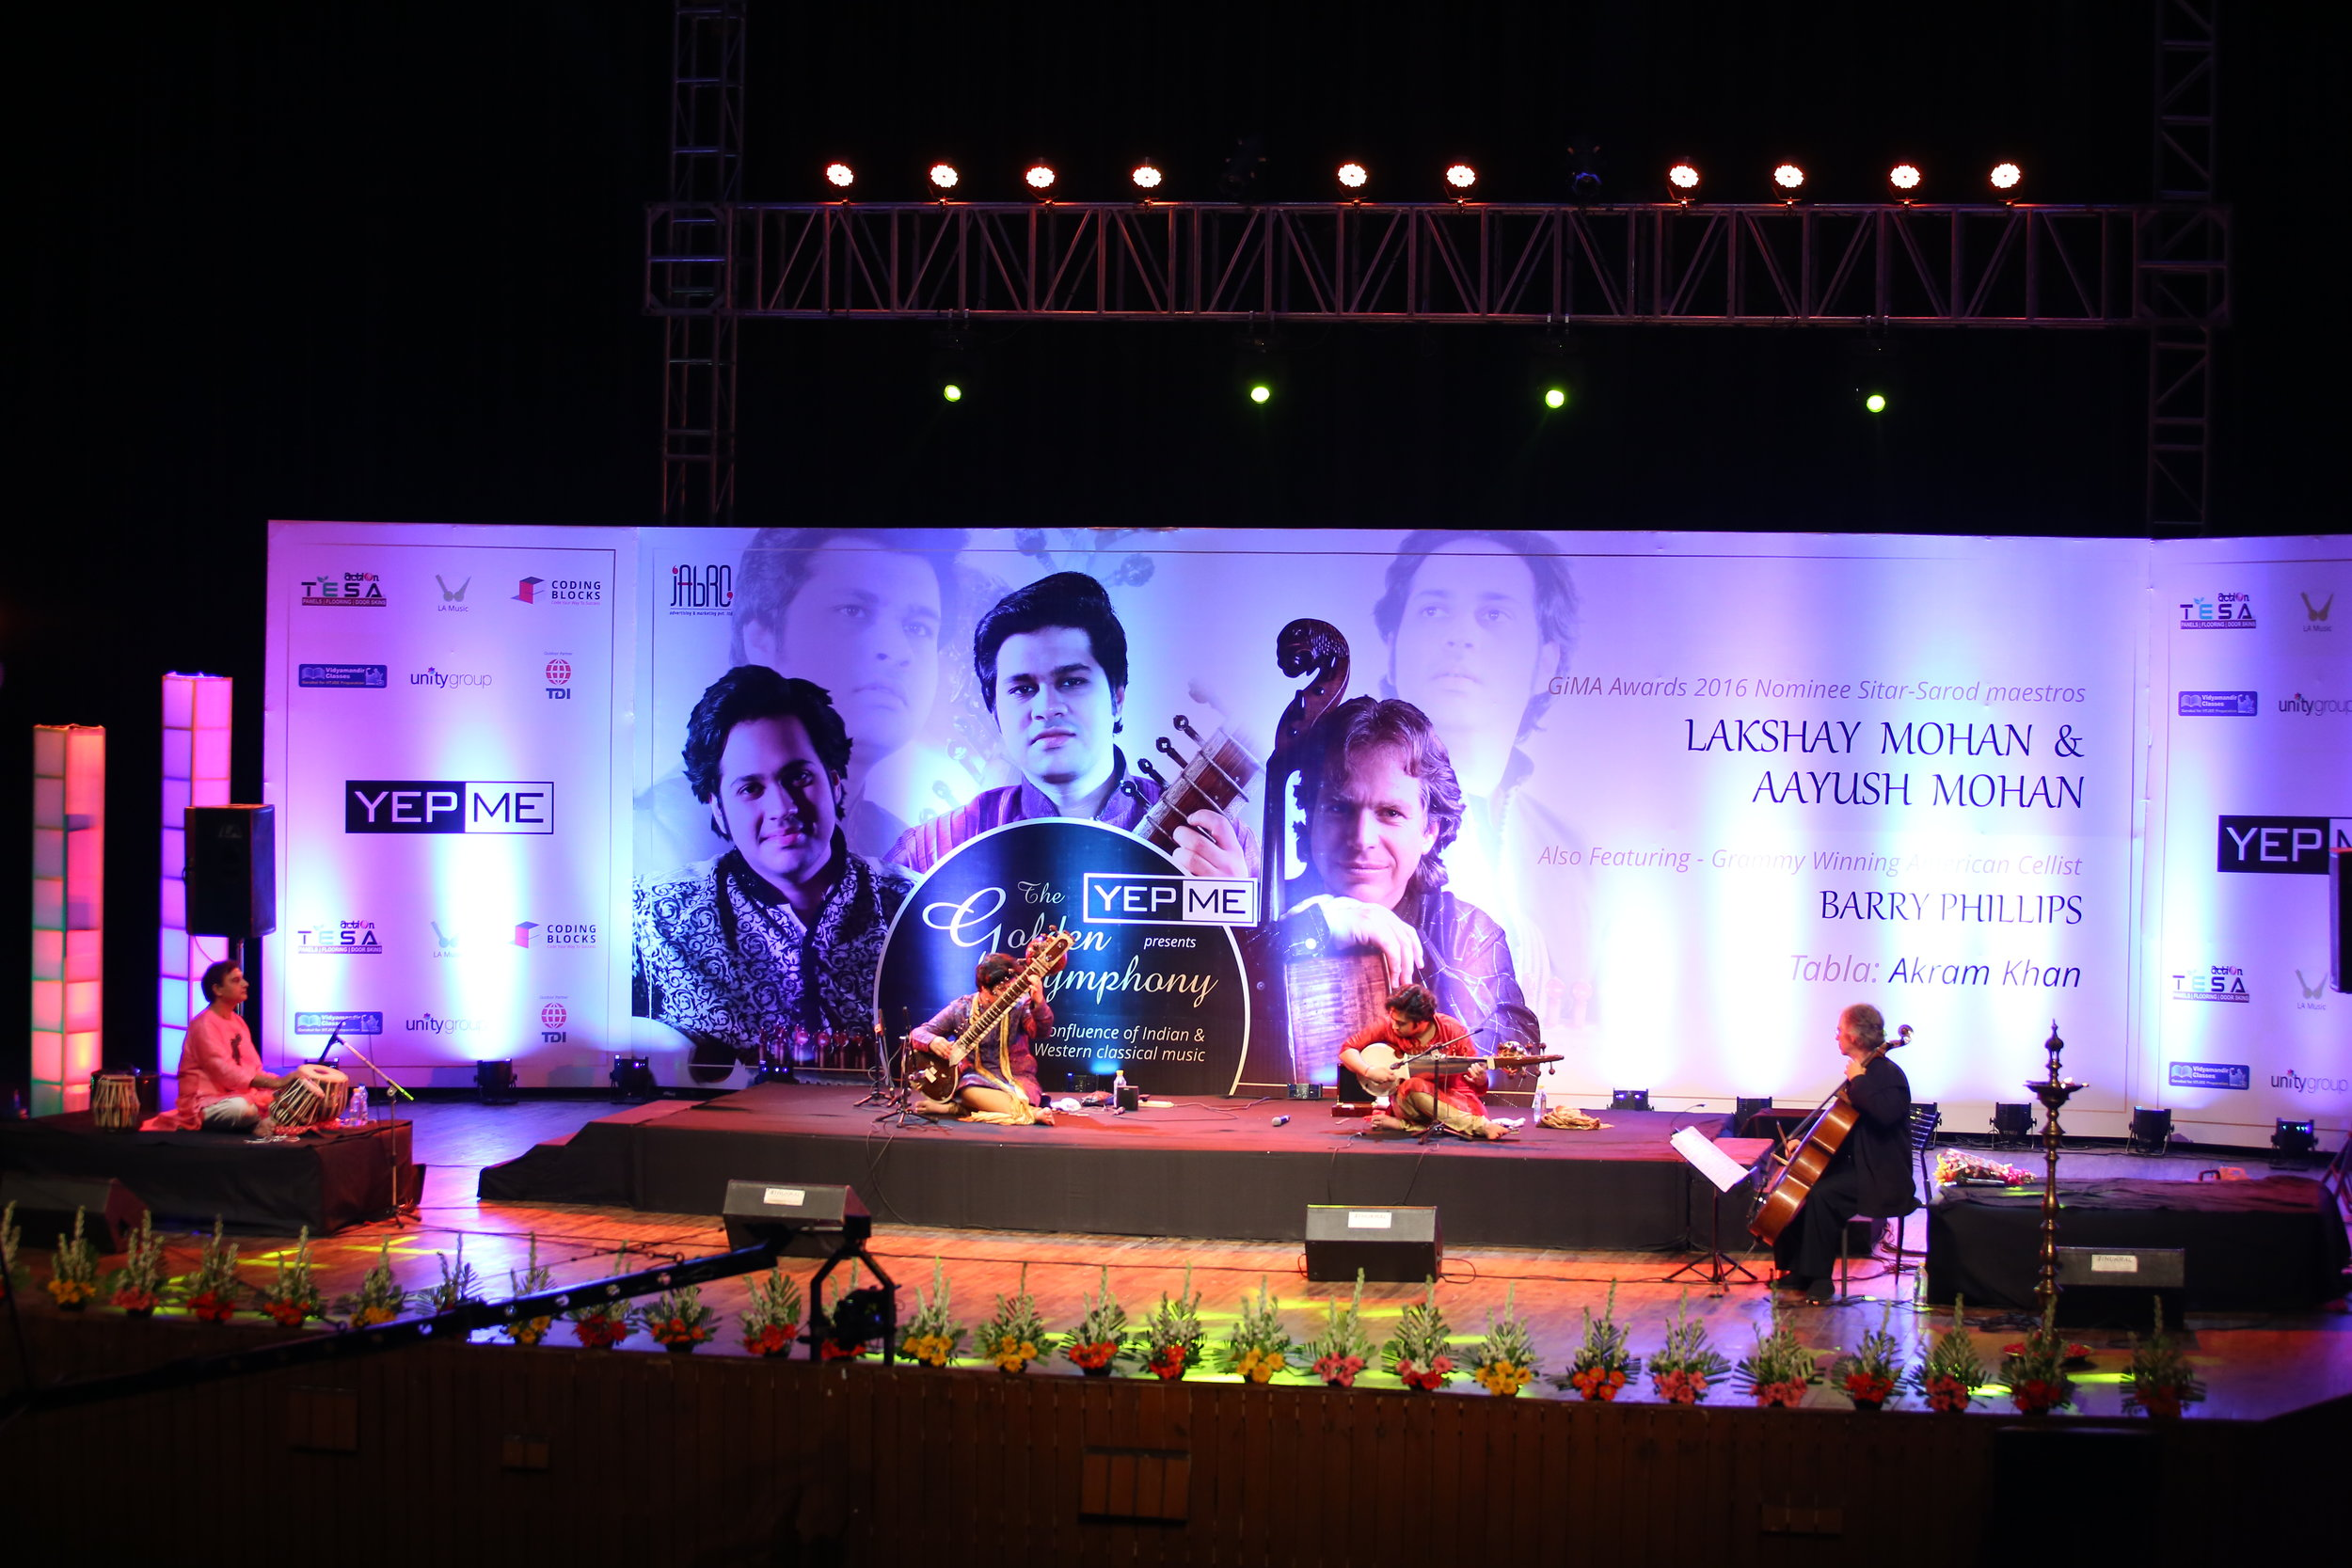 Lakshay & Aayush Mohan at the Sirifort Auditorium, New Delhi